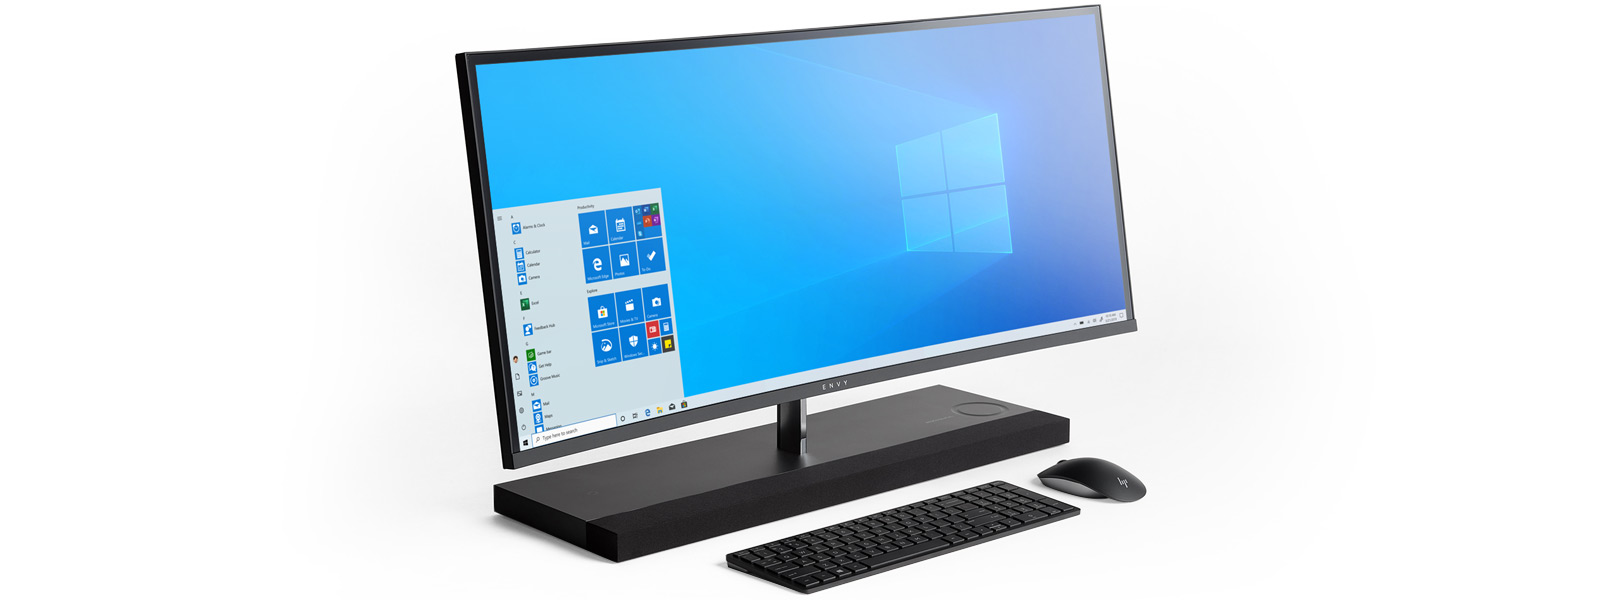 An HP ENVY 27 all in one computer showing a Windows 10 start screen with a keyboard and mouse in front of it